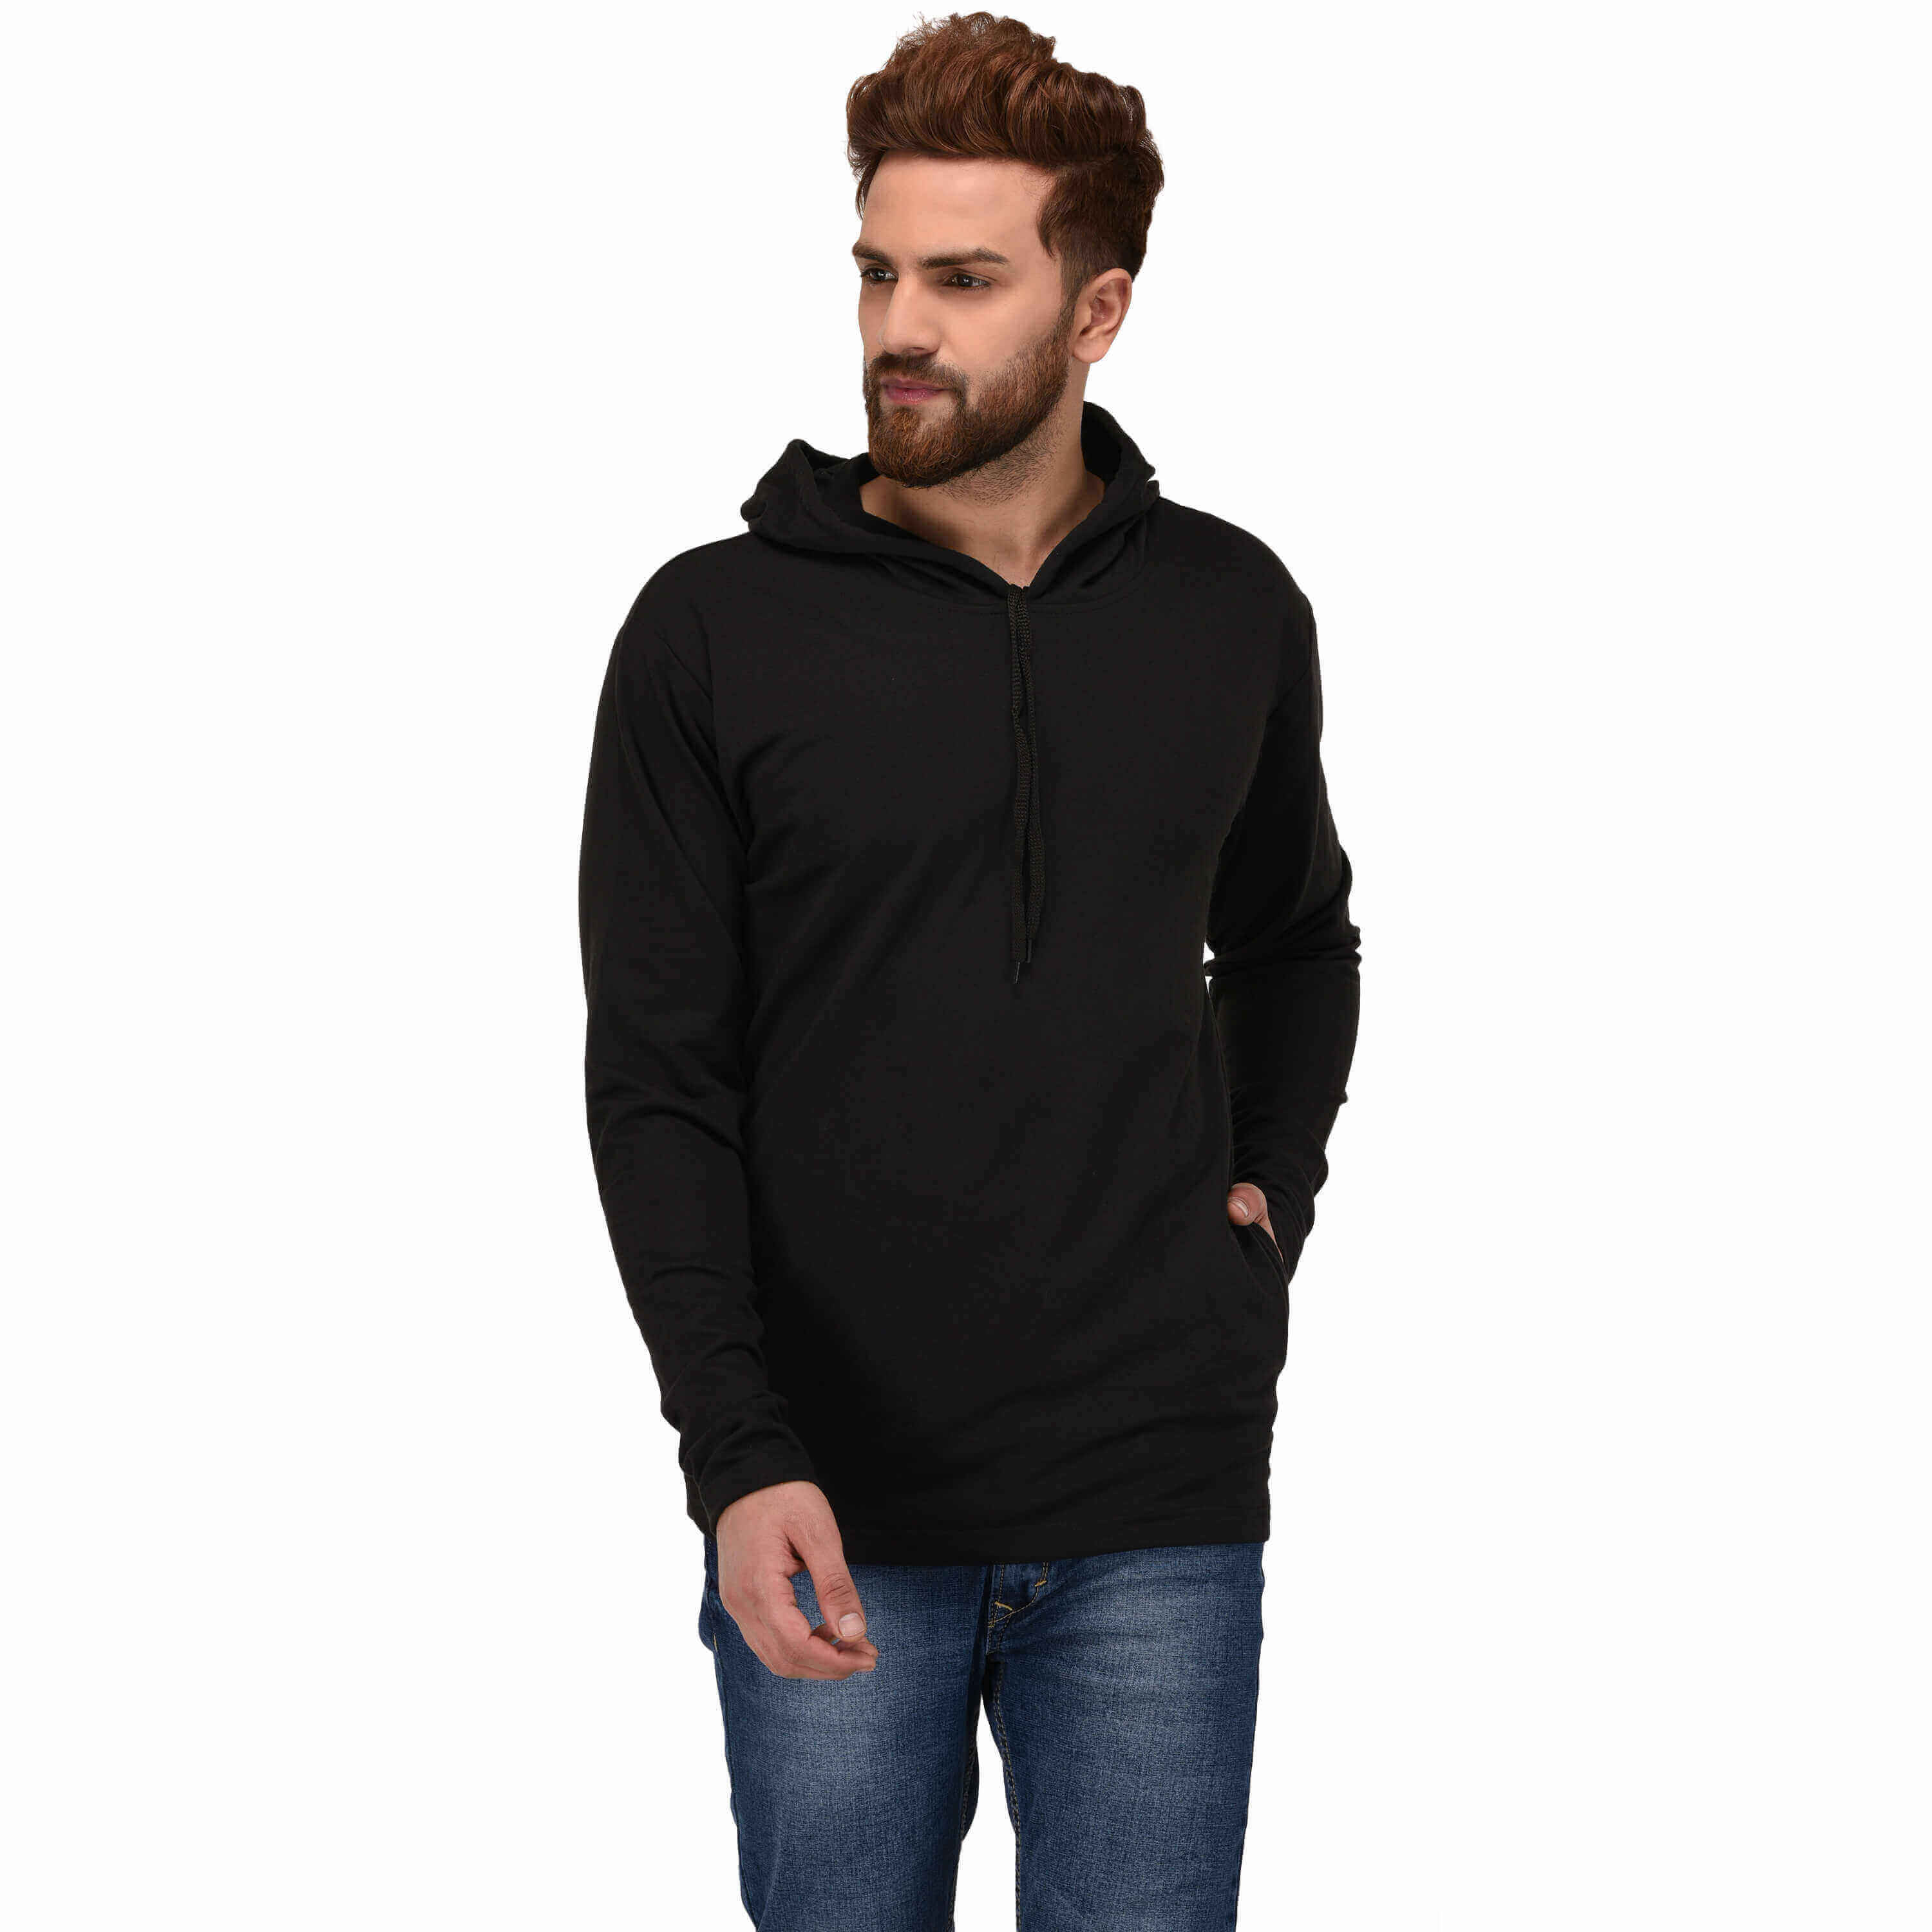 Sports Hoodies Manufacturers in Egypt